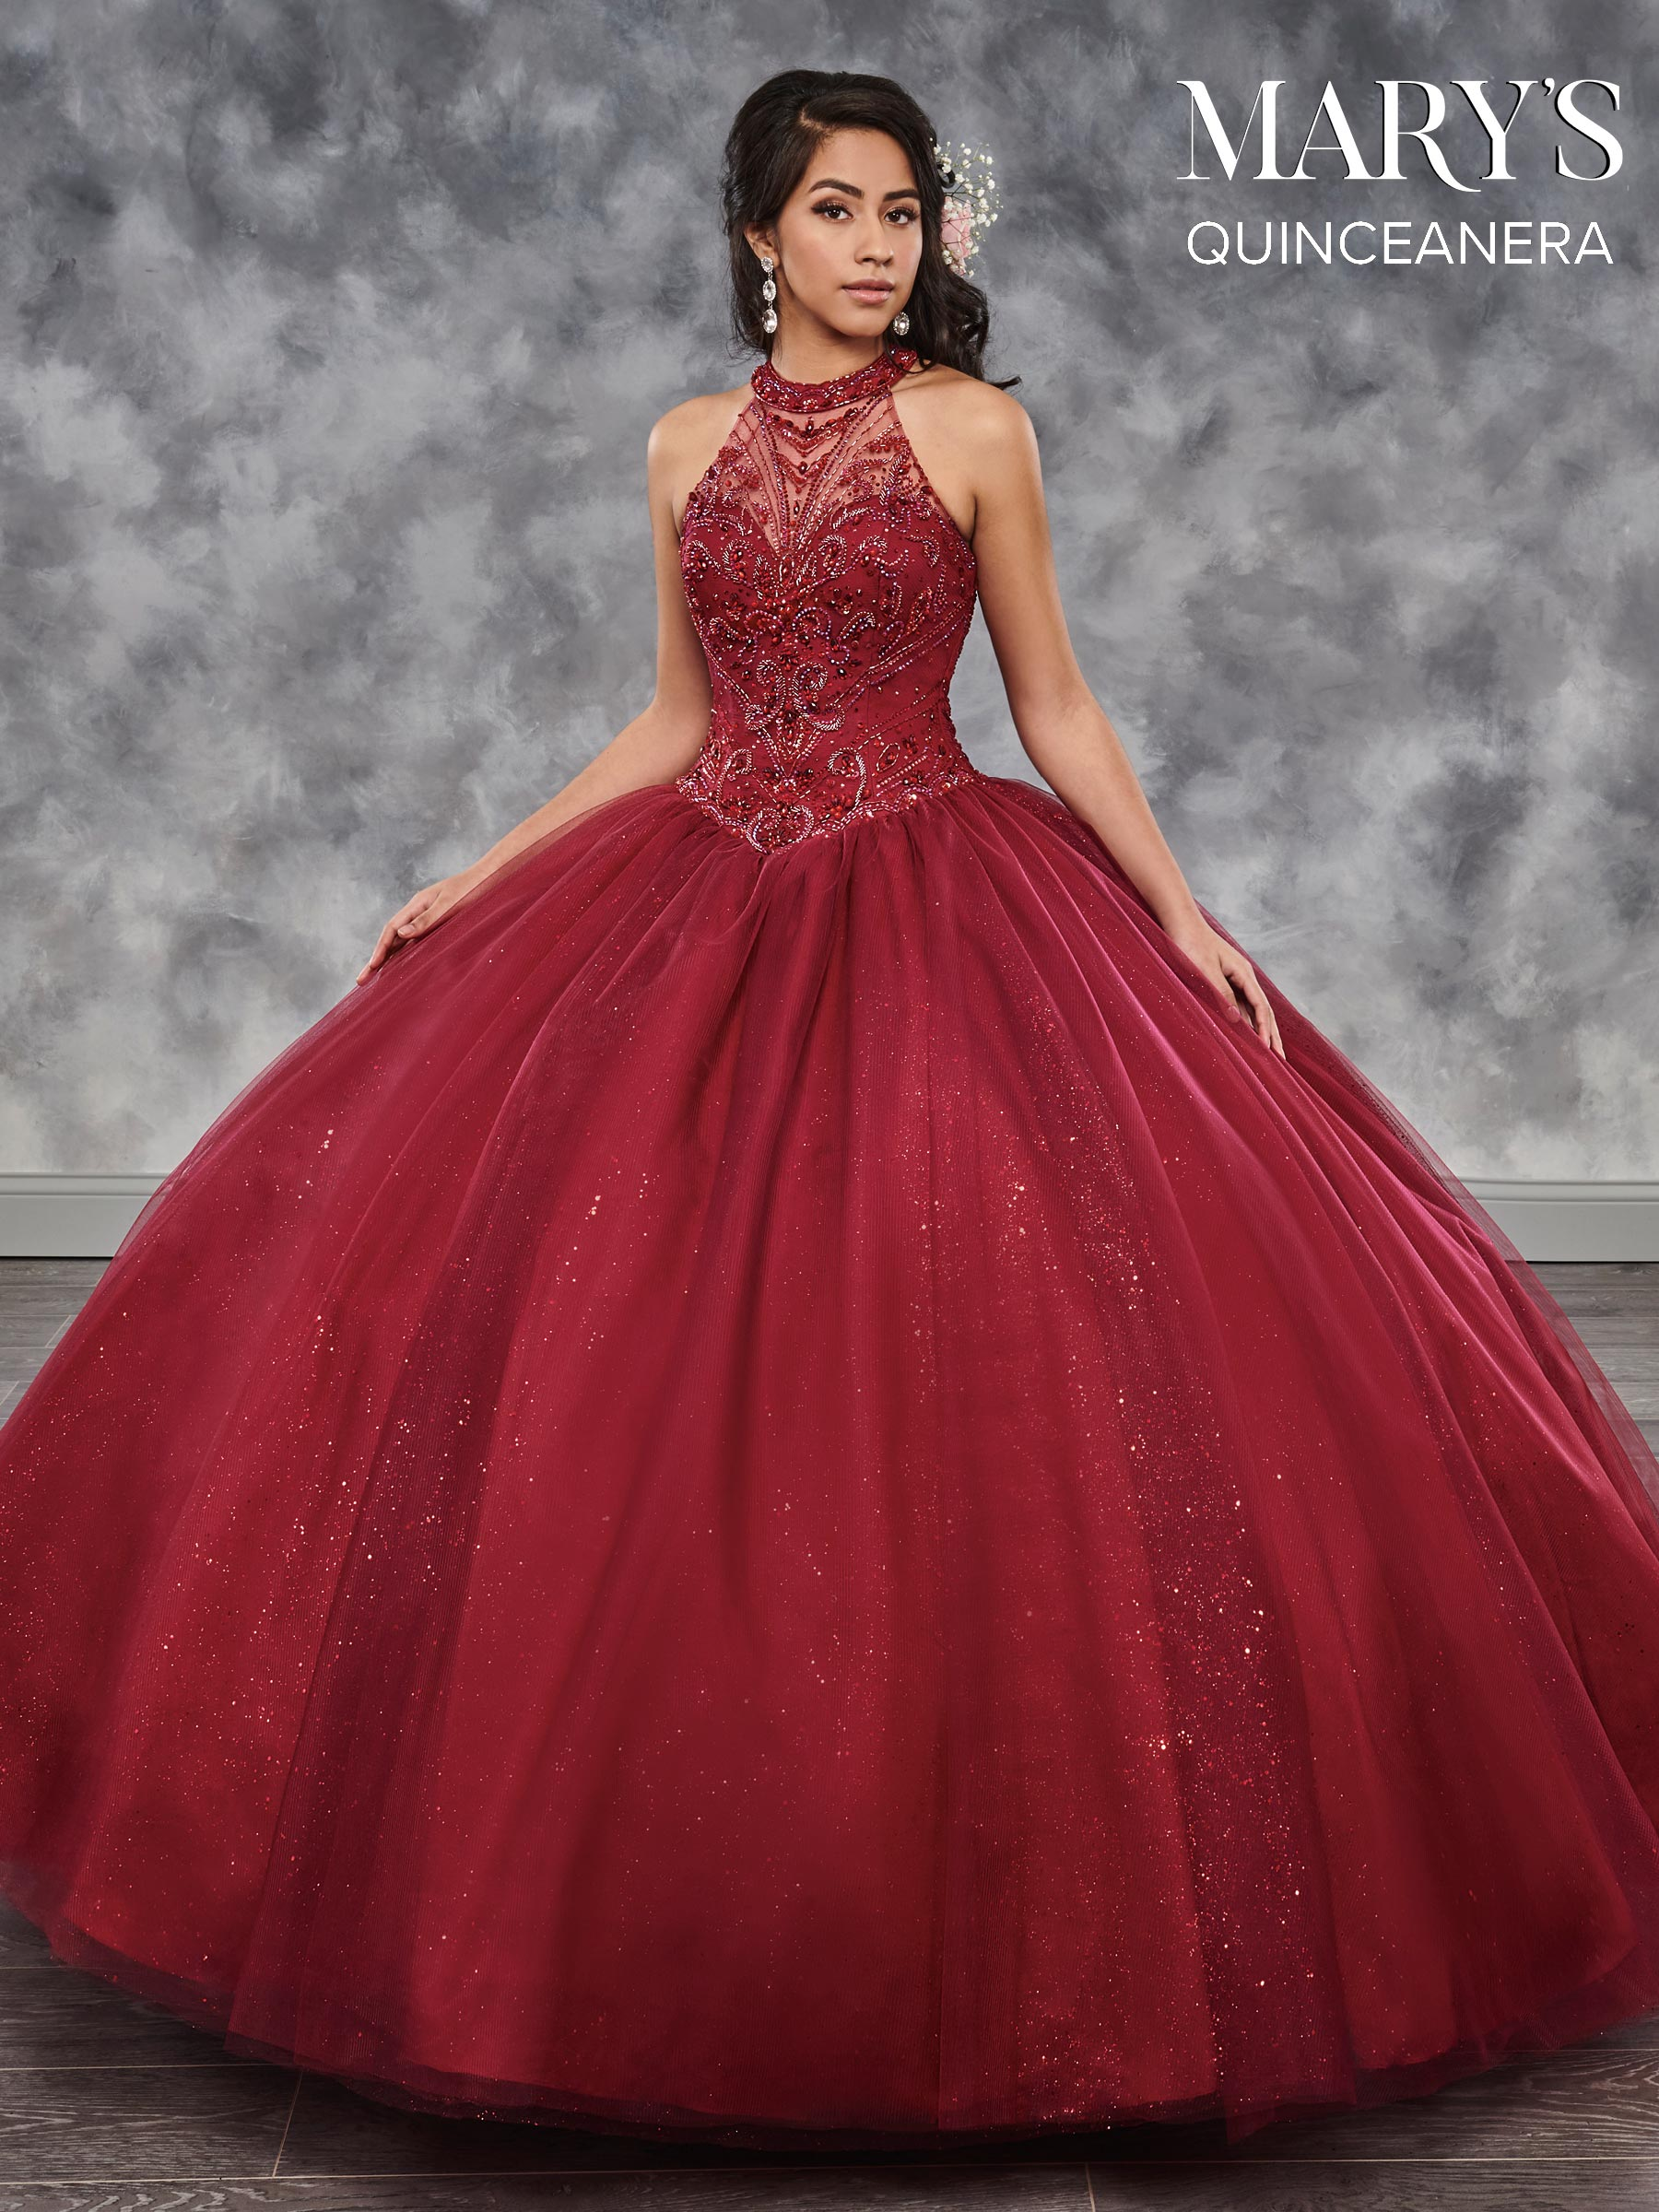 Marys Quinceanera Dresses | Mary's Quinceanera | Style - MQ1019